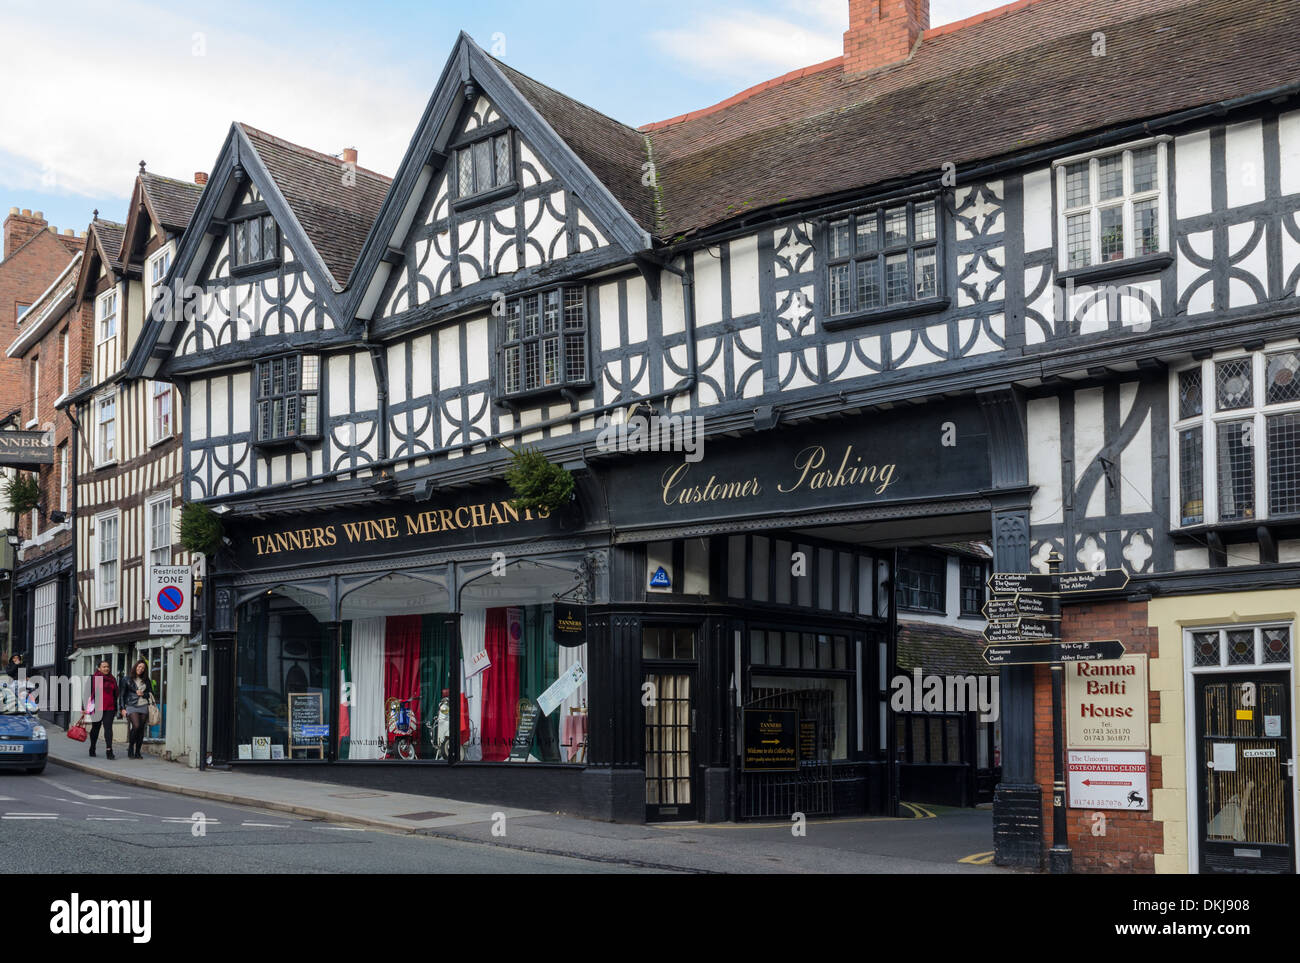 Tanners Wine Merchants in Wyle Cop, Shrewsbury - Stock Image